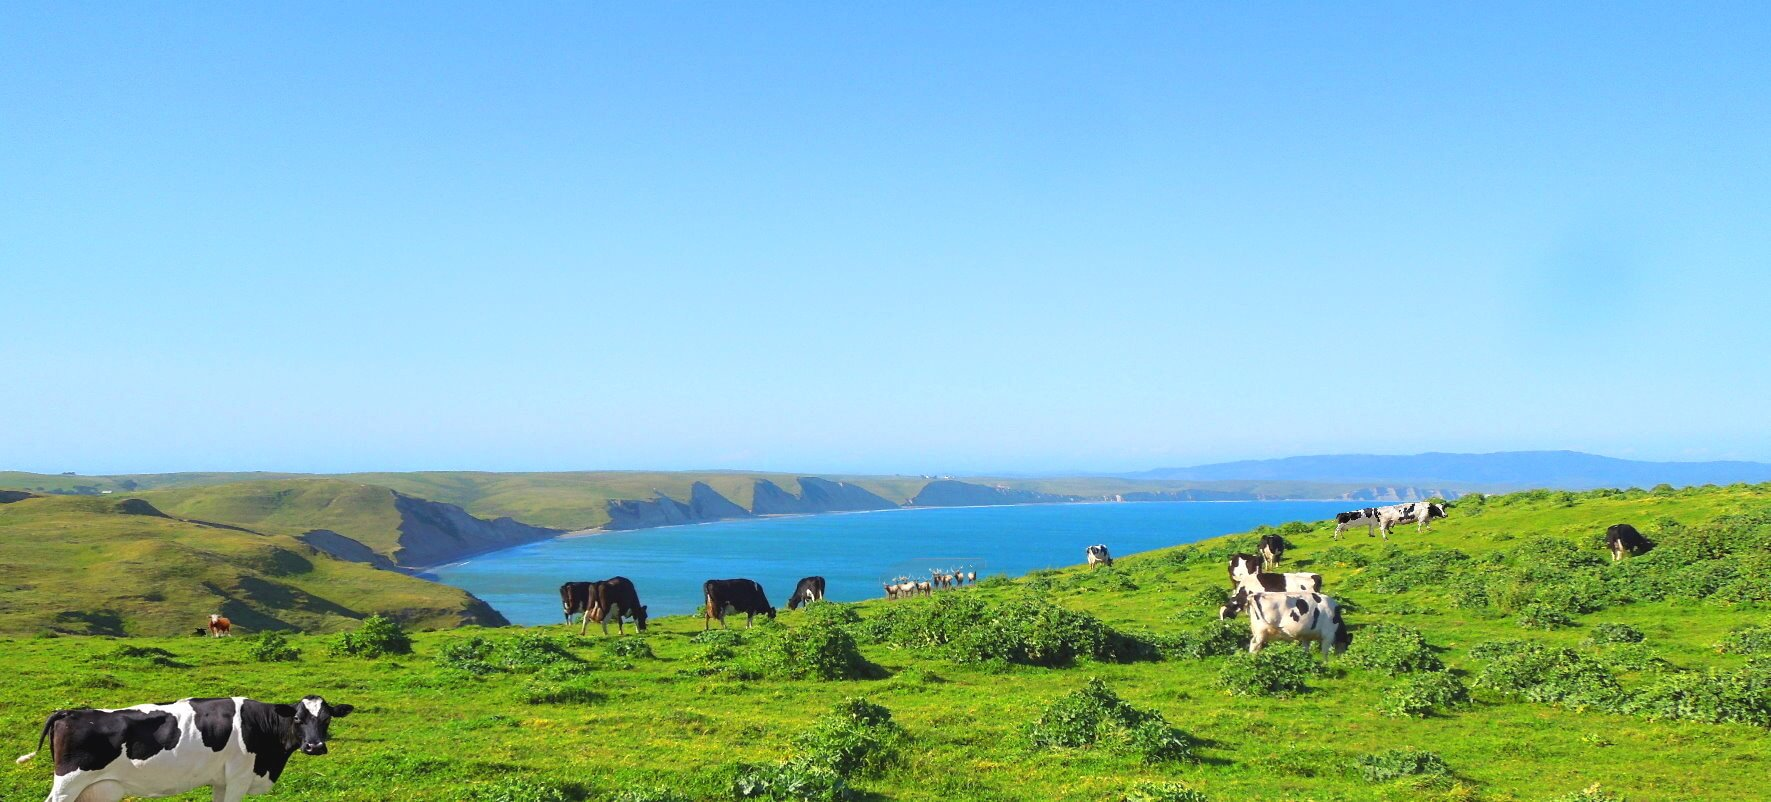 Point-Reyes-National-Seashore-Things-to-See